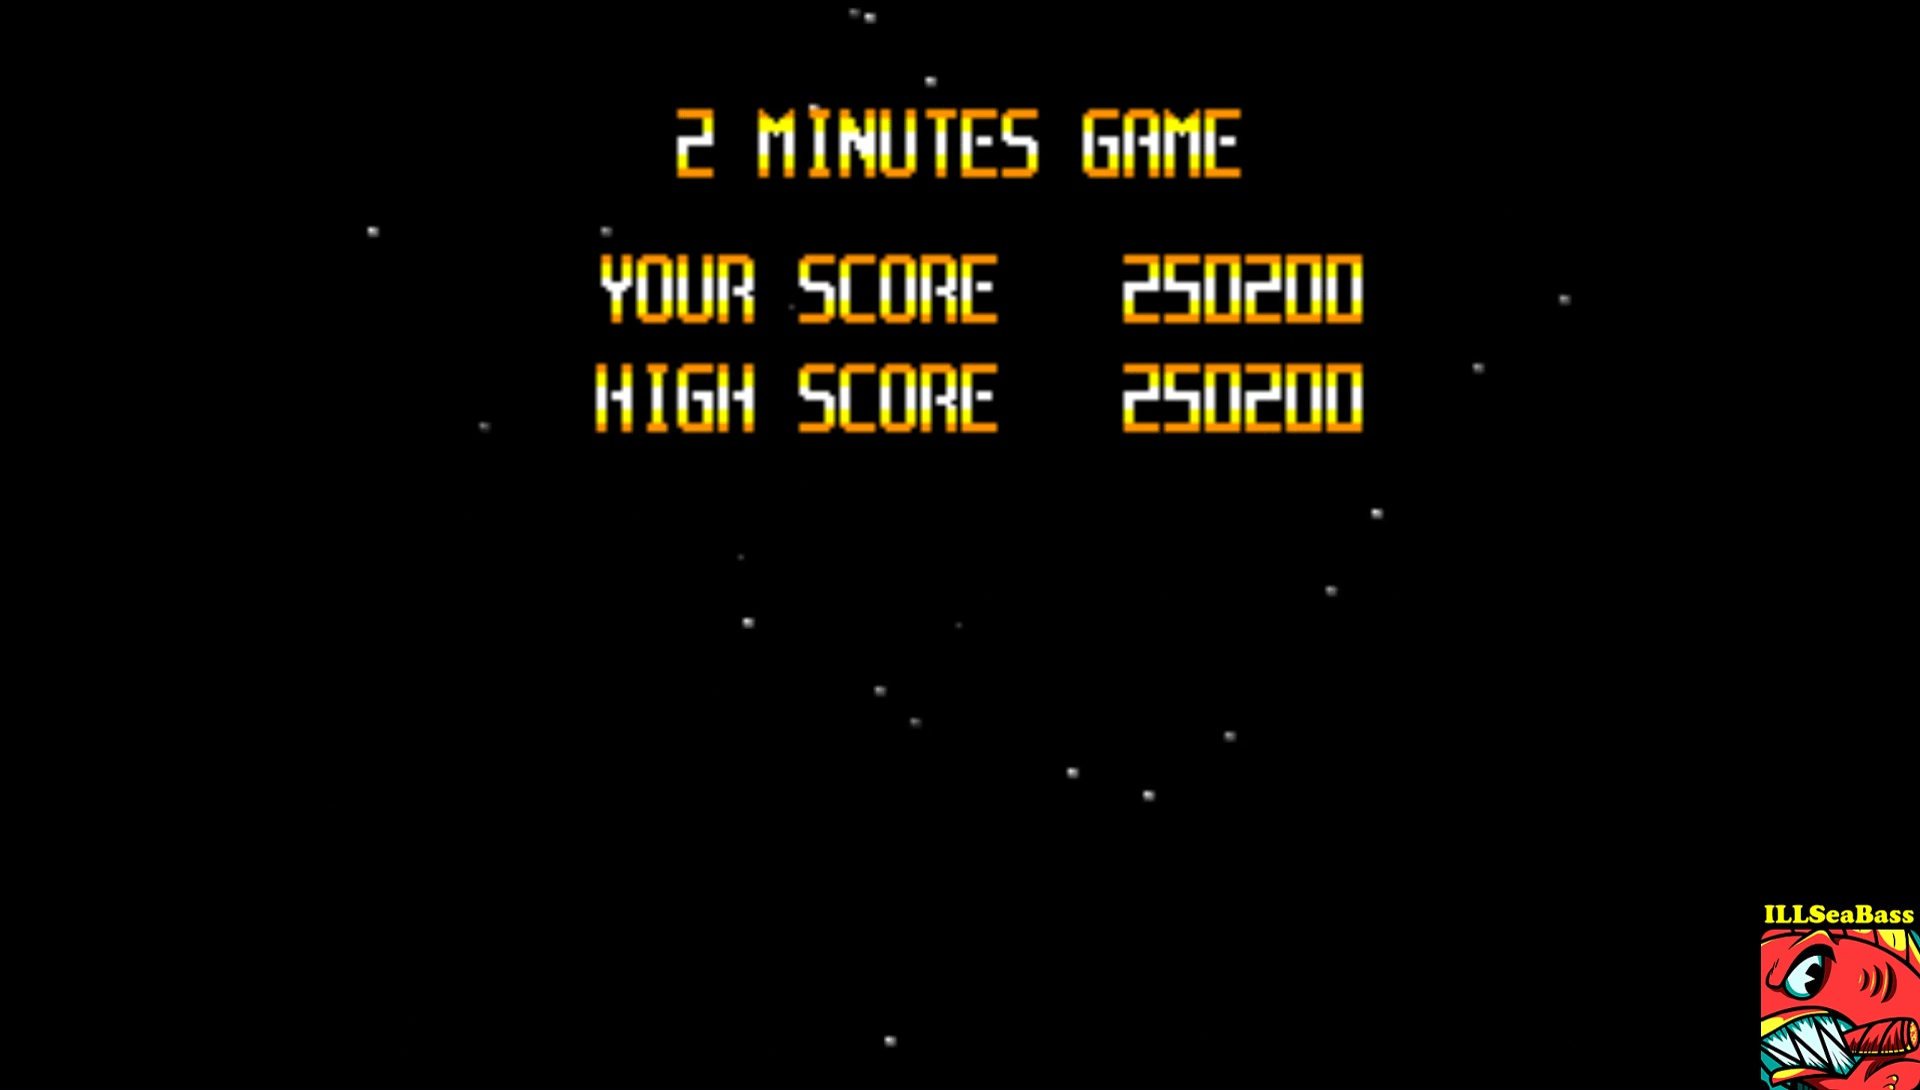 ILLSeaBass: Super Star Soldier [2 Minutes Game] (TurboGrafx-16/PC Engine Emulated) 250,200 points on 2017-06-20 08:50:10